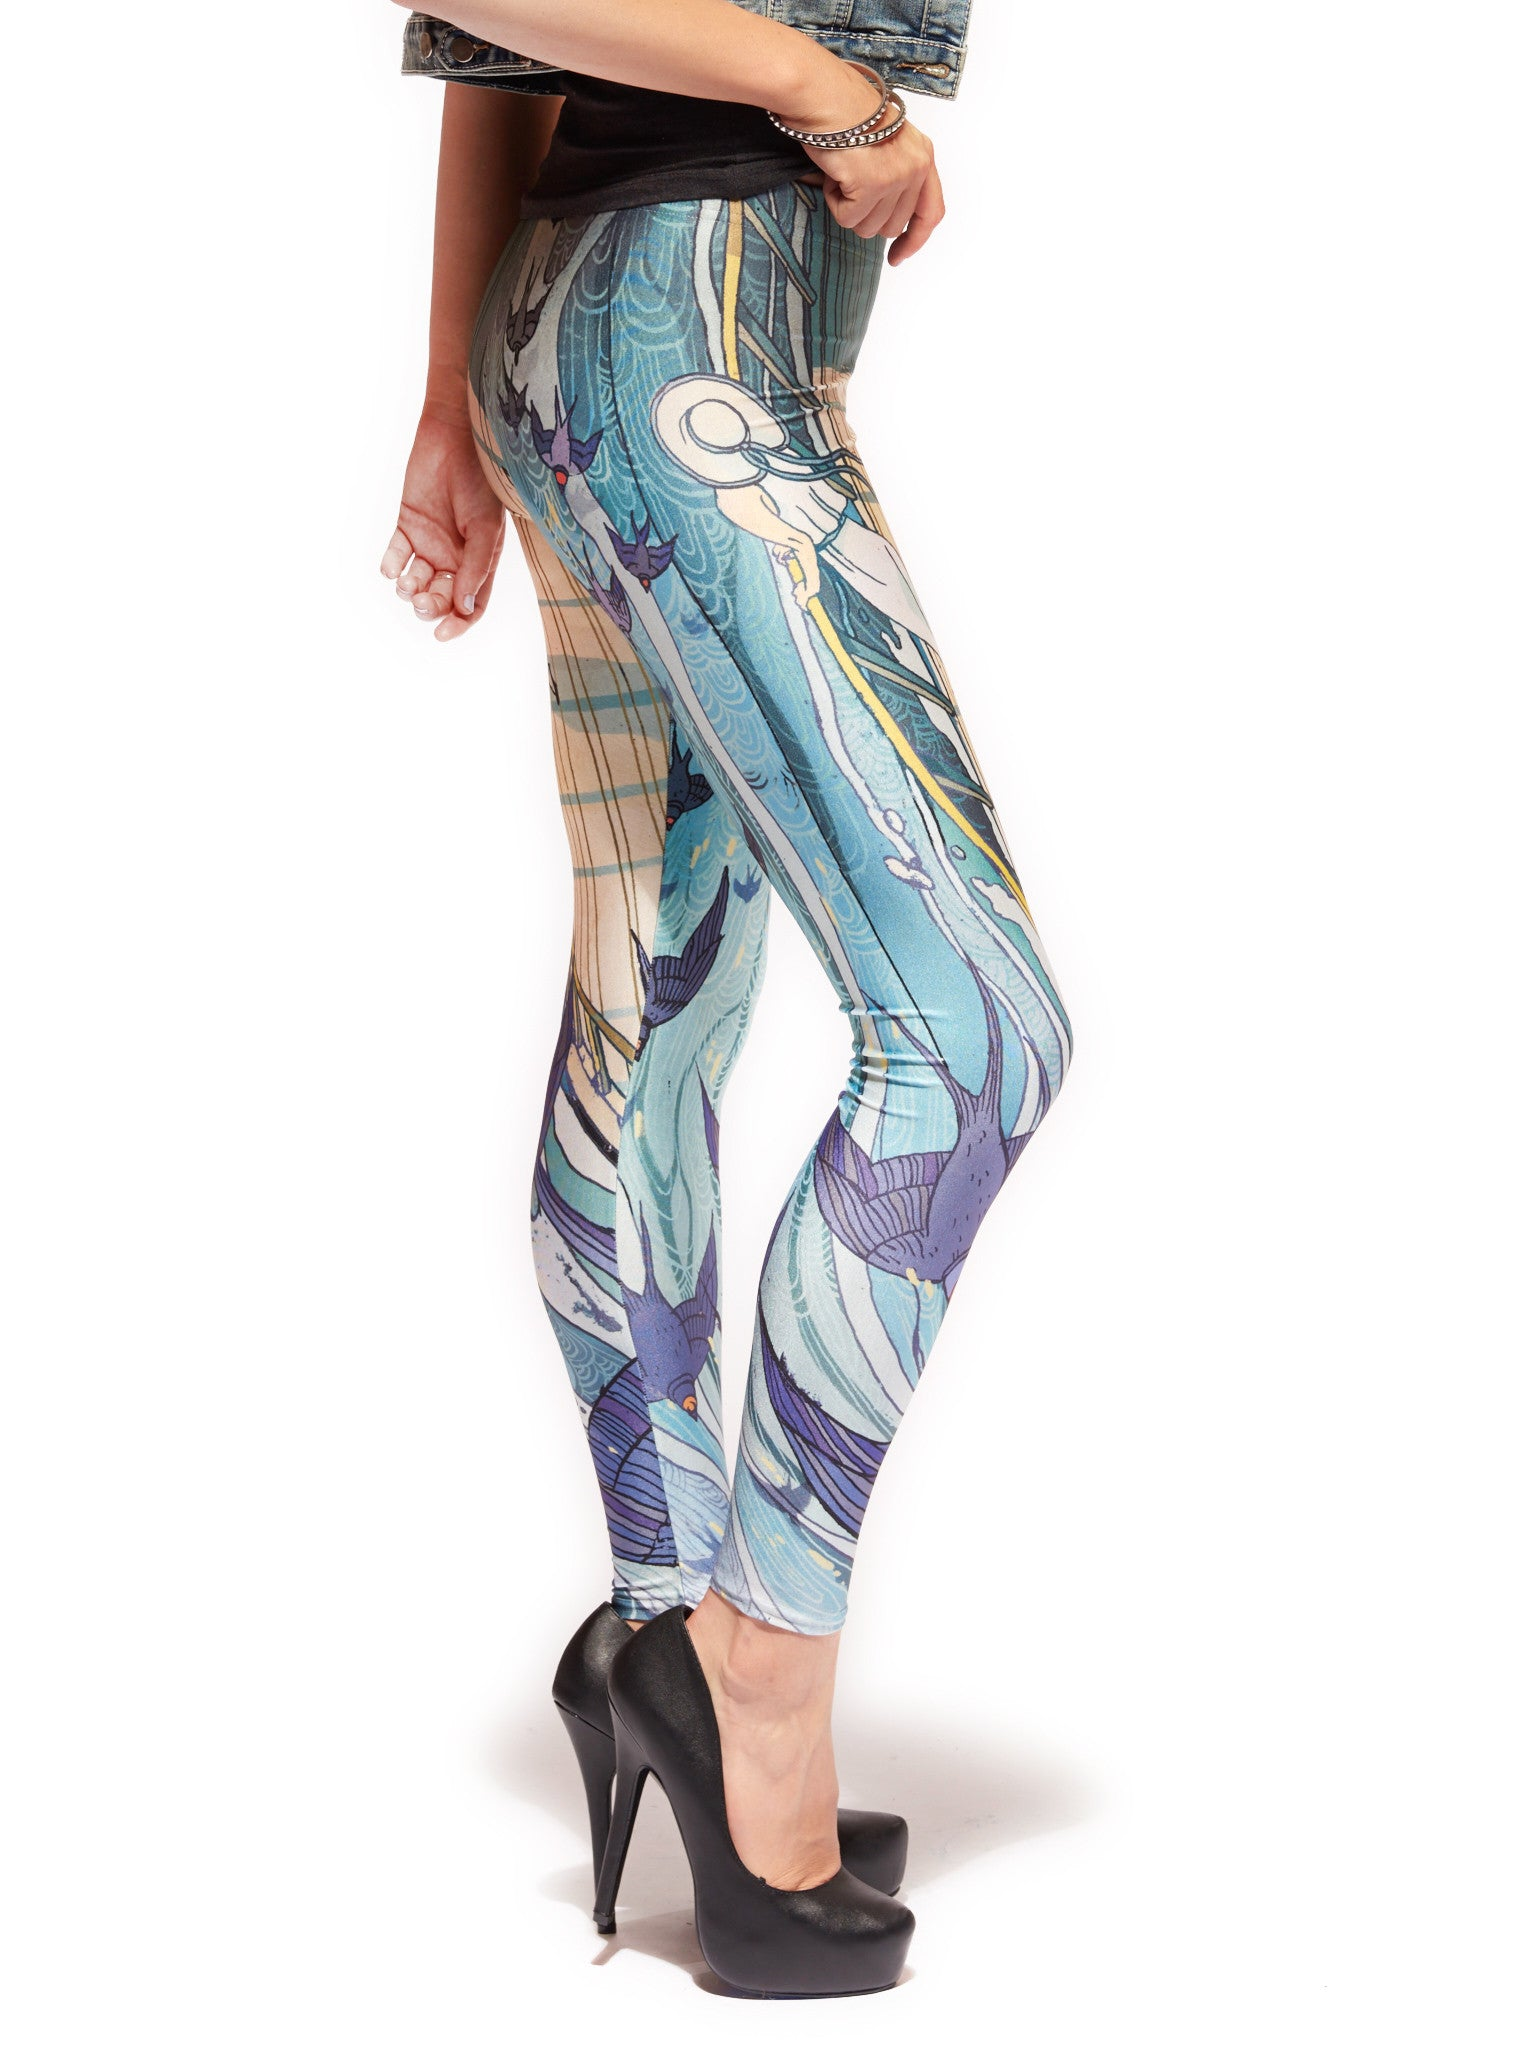 Cassarole Queen West Leggings - Nuvango  - 2